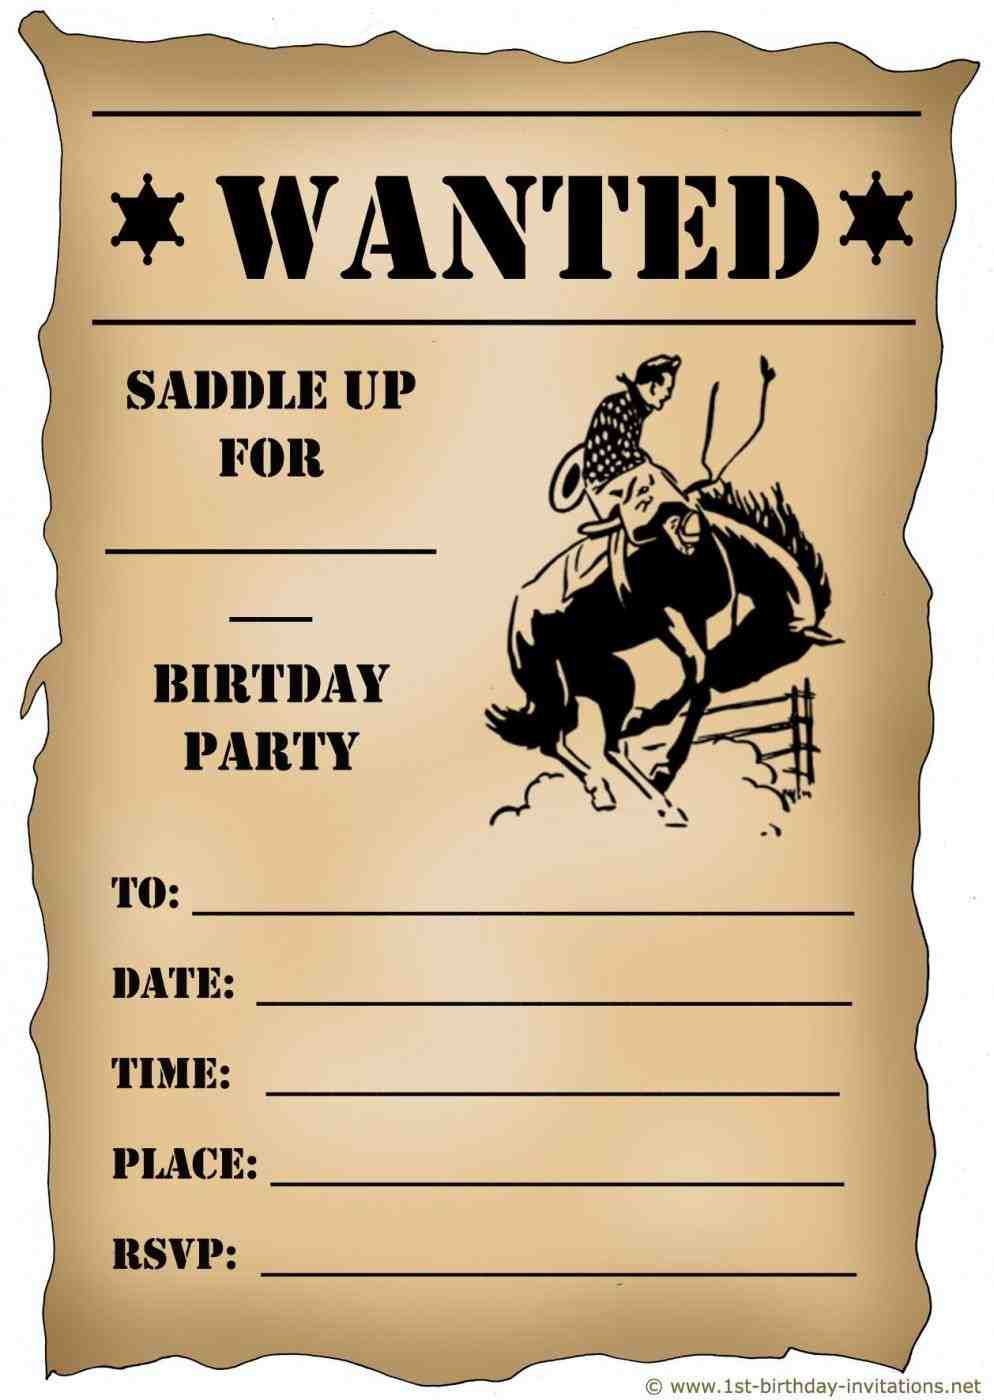 wanted birthday invitation template ; download_archives-wanted-birthday-invitation-template-free-printable-s-on-wanted-poster-wedding-invitations